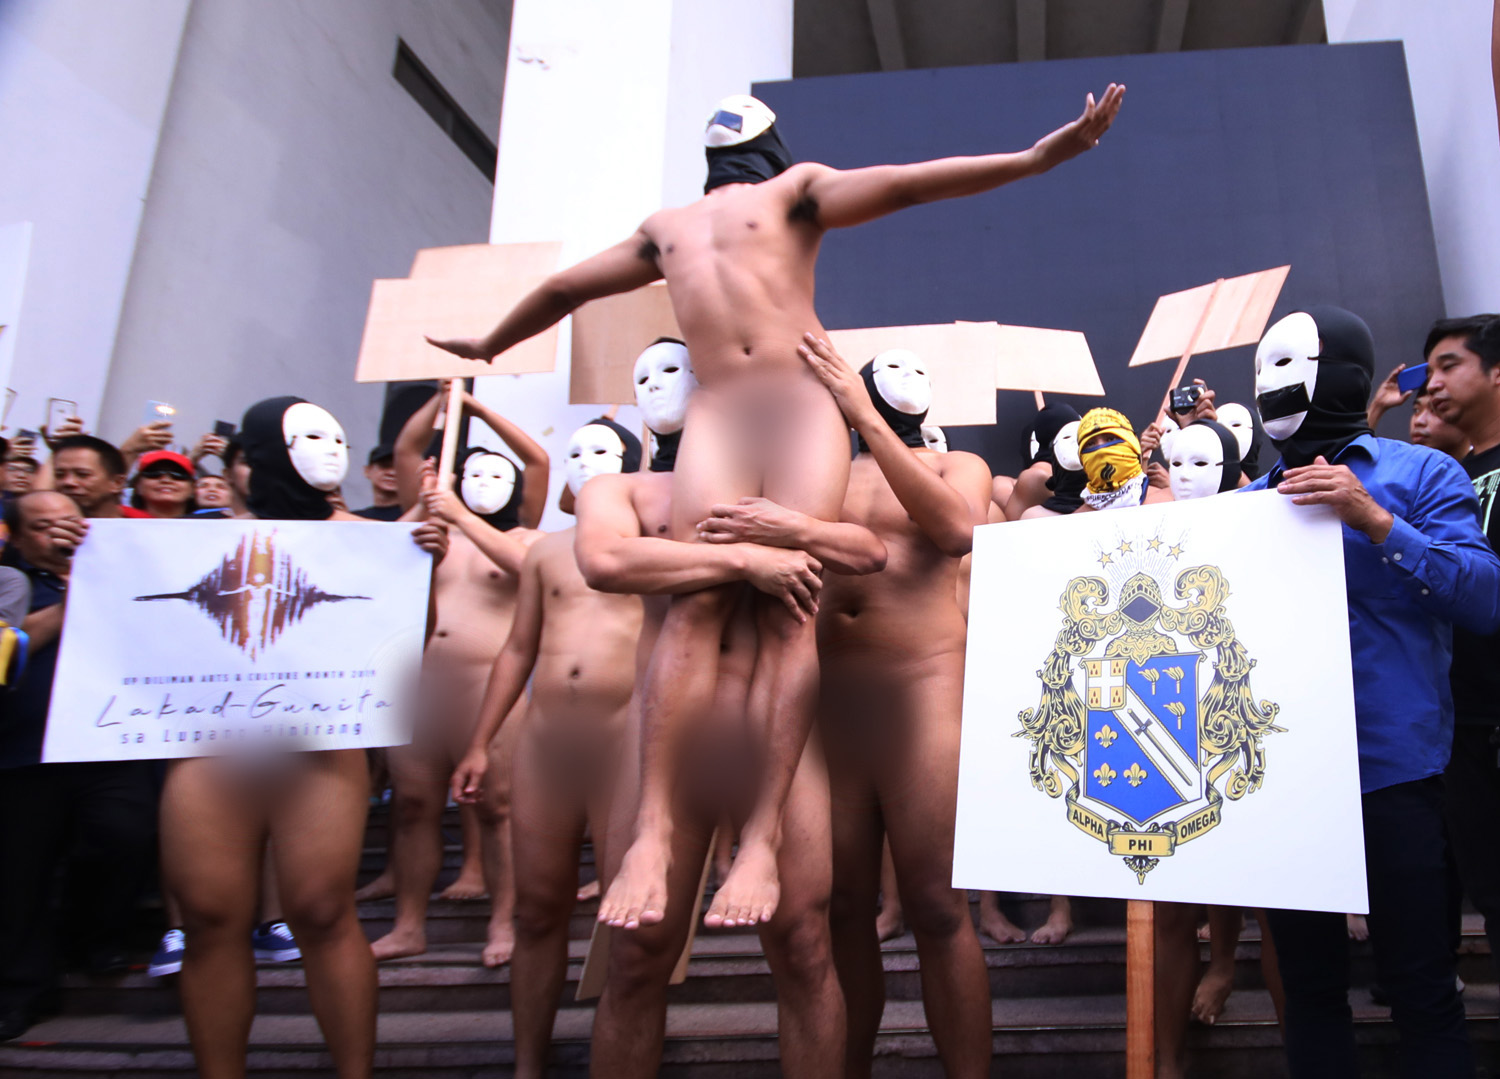 TAKE A STAND. Members of the Alpha Phi Omega fraternity hold their annual Oblation Run at the University of the Philippines Diliman on Friday, February 8, 2019. Photo by Darren Langit/Rappler